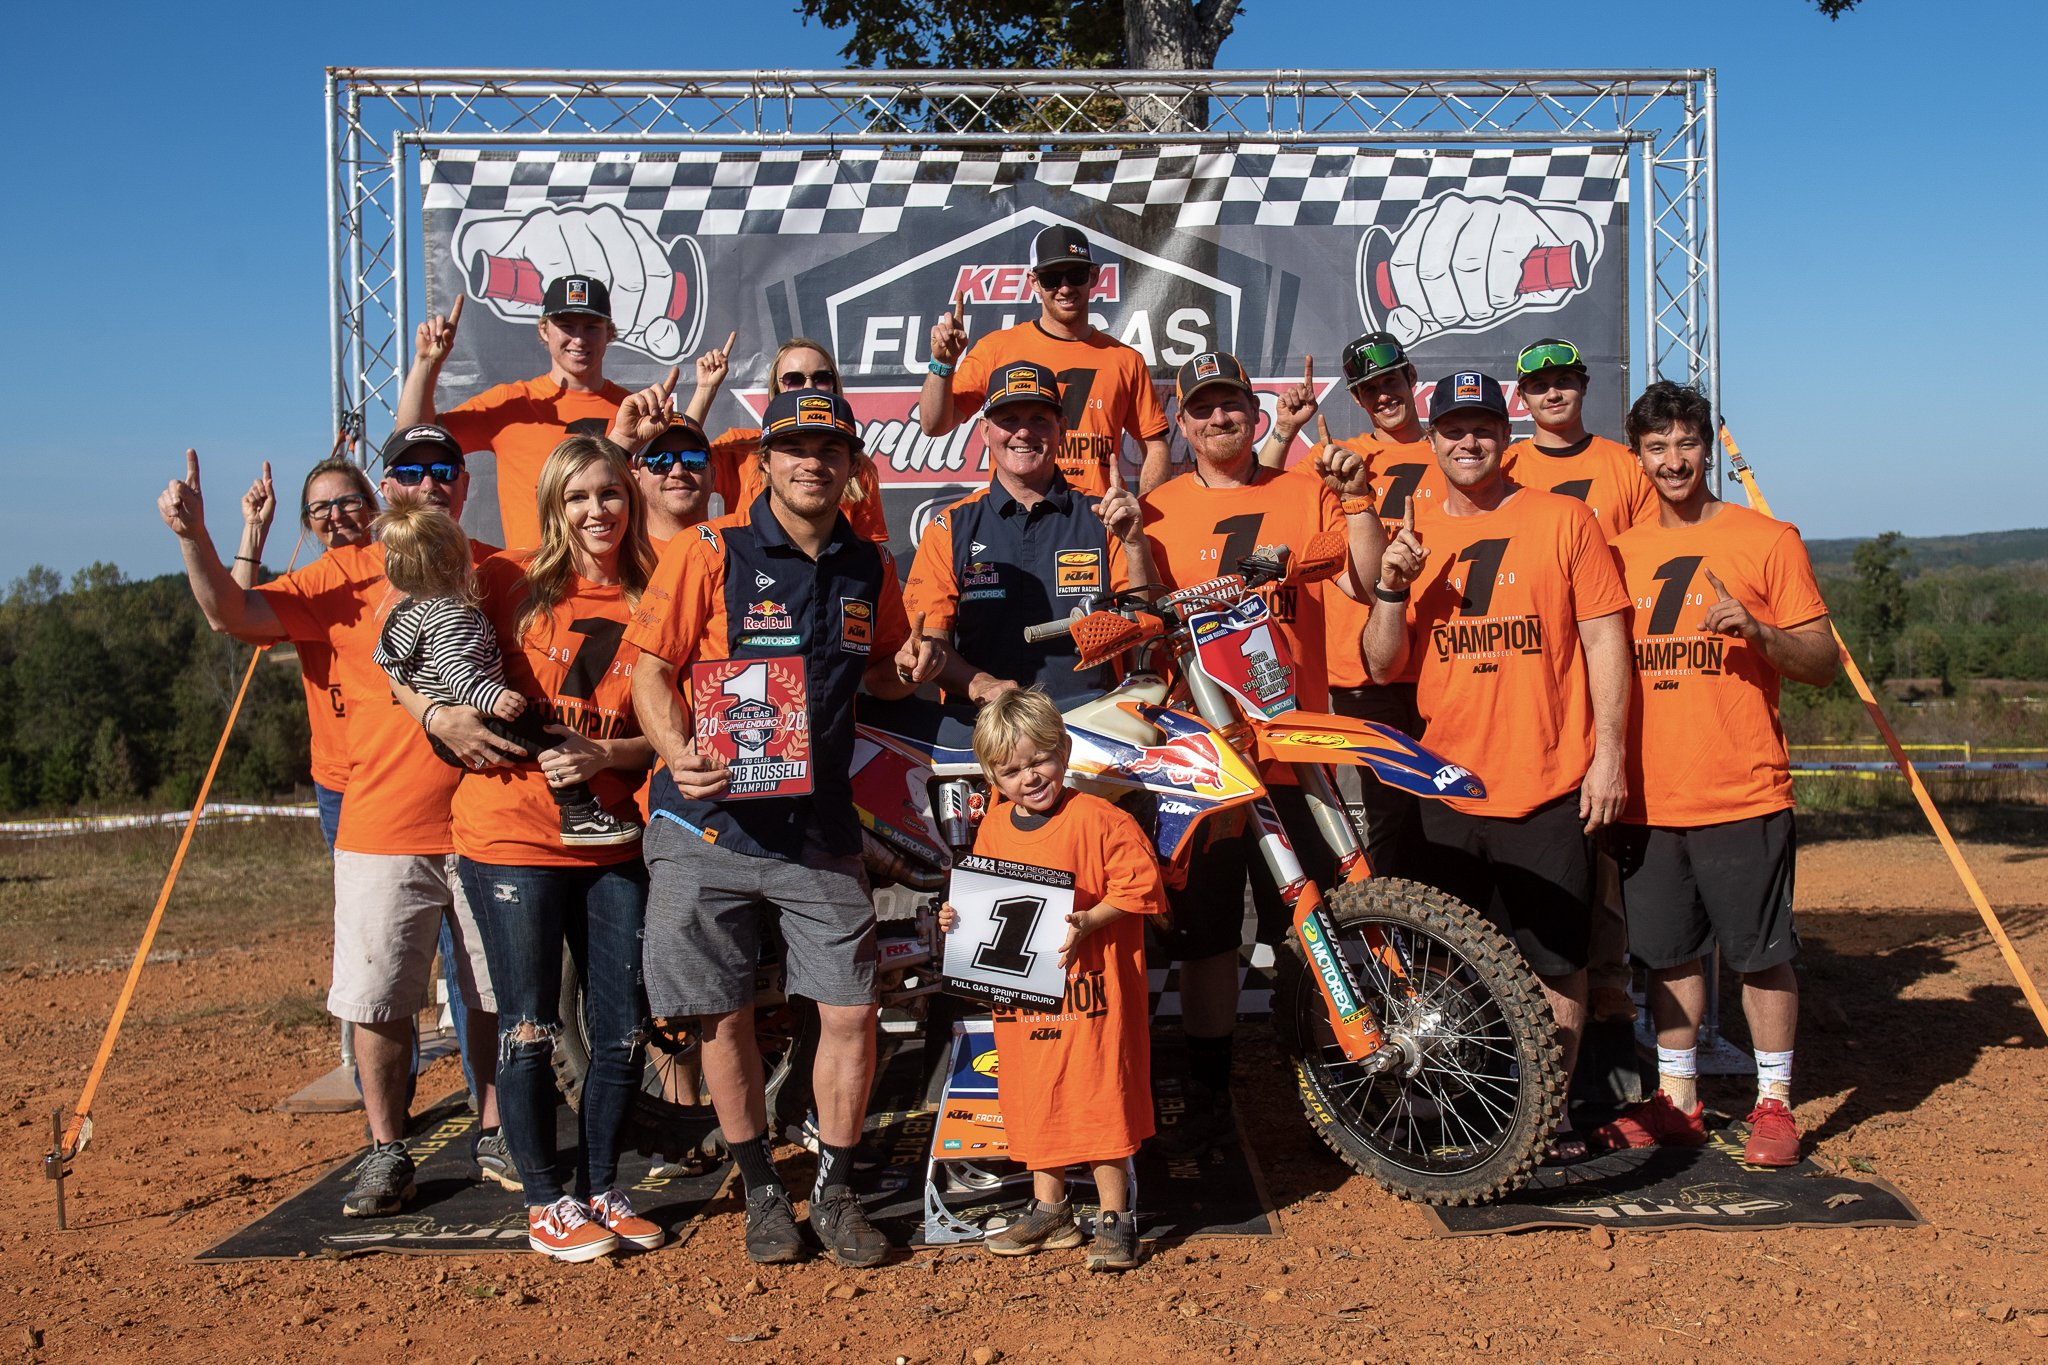 Kailub Russell Claims Full Gas Championship with Win at Silver Hawk Plantation